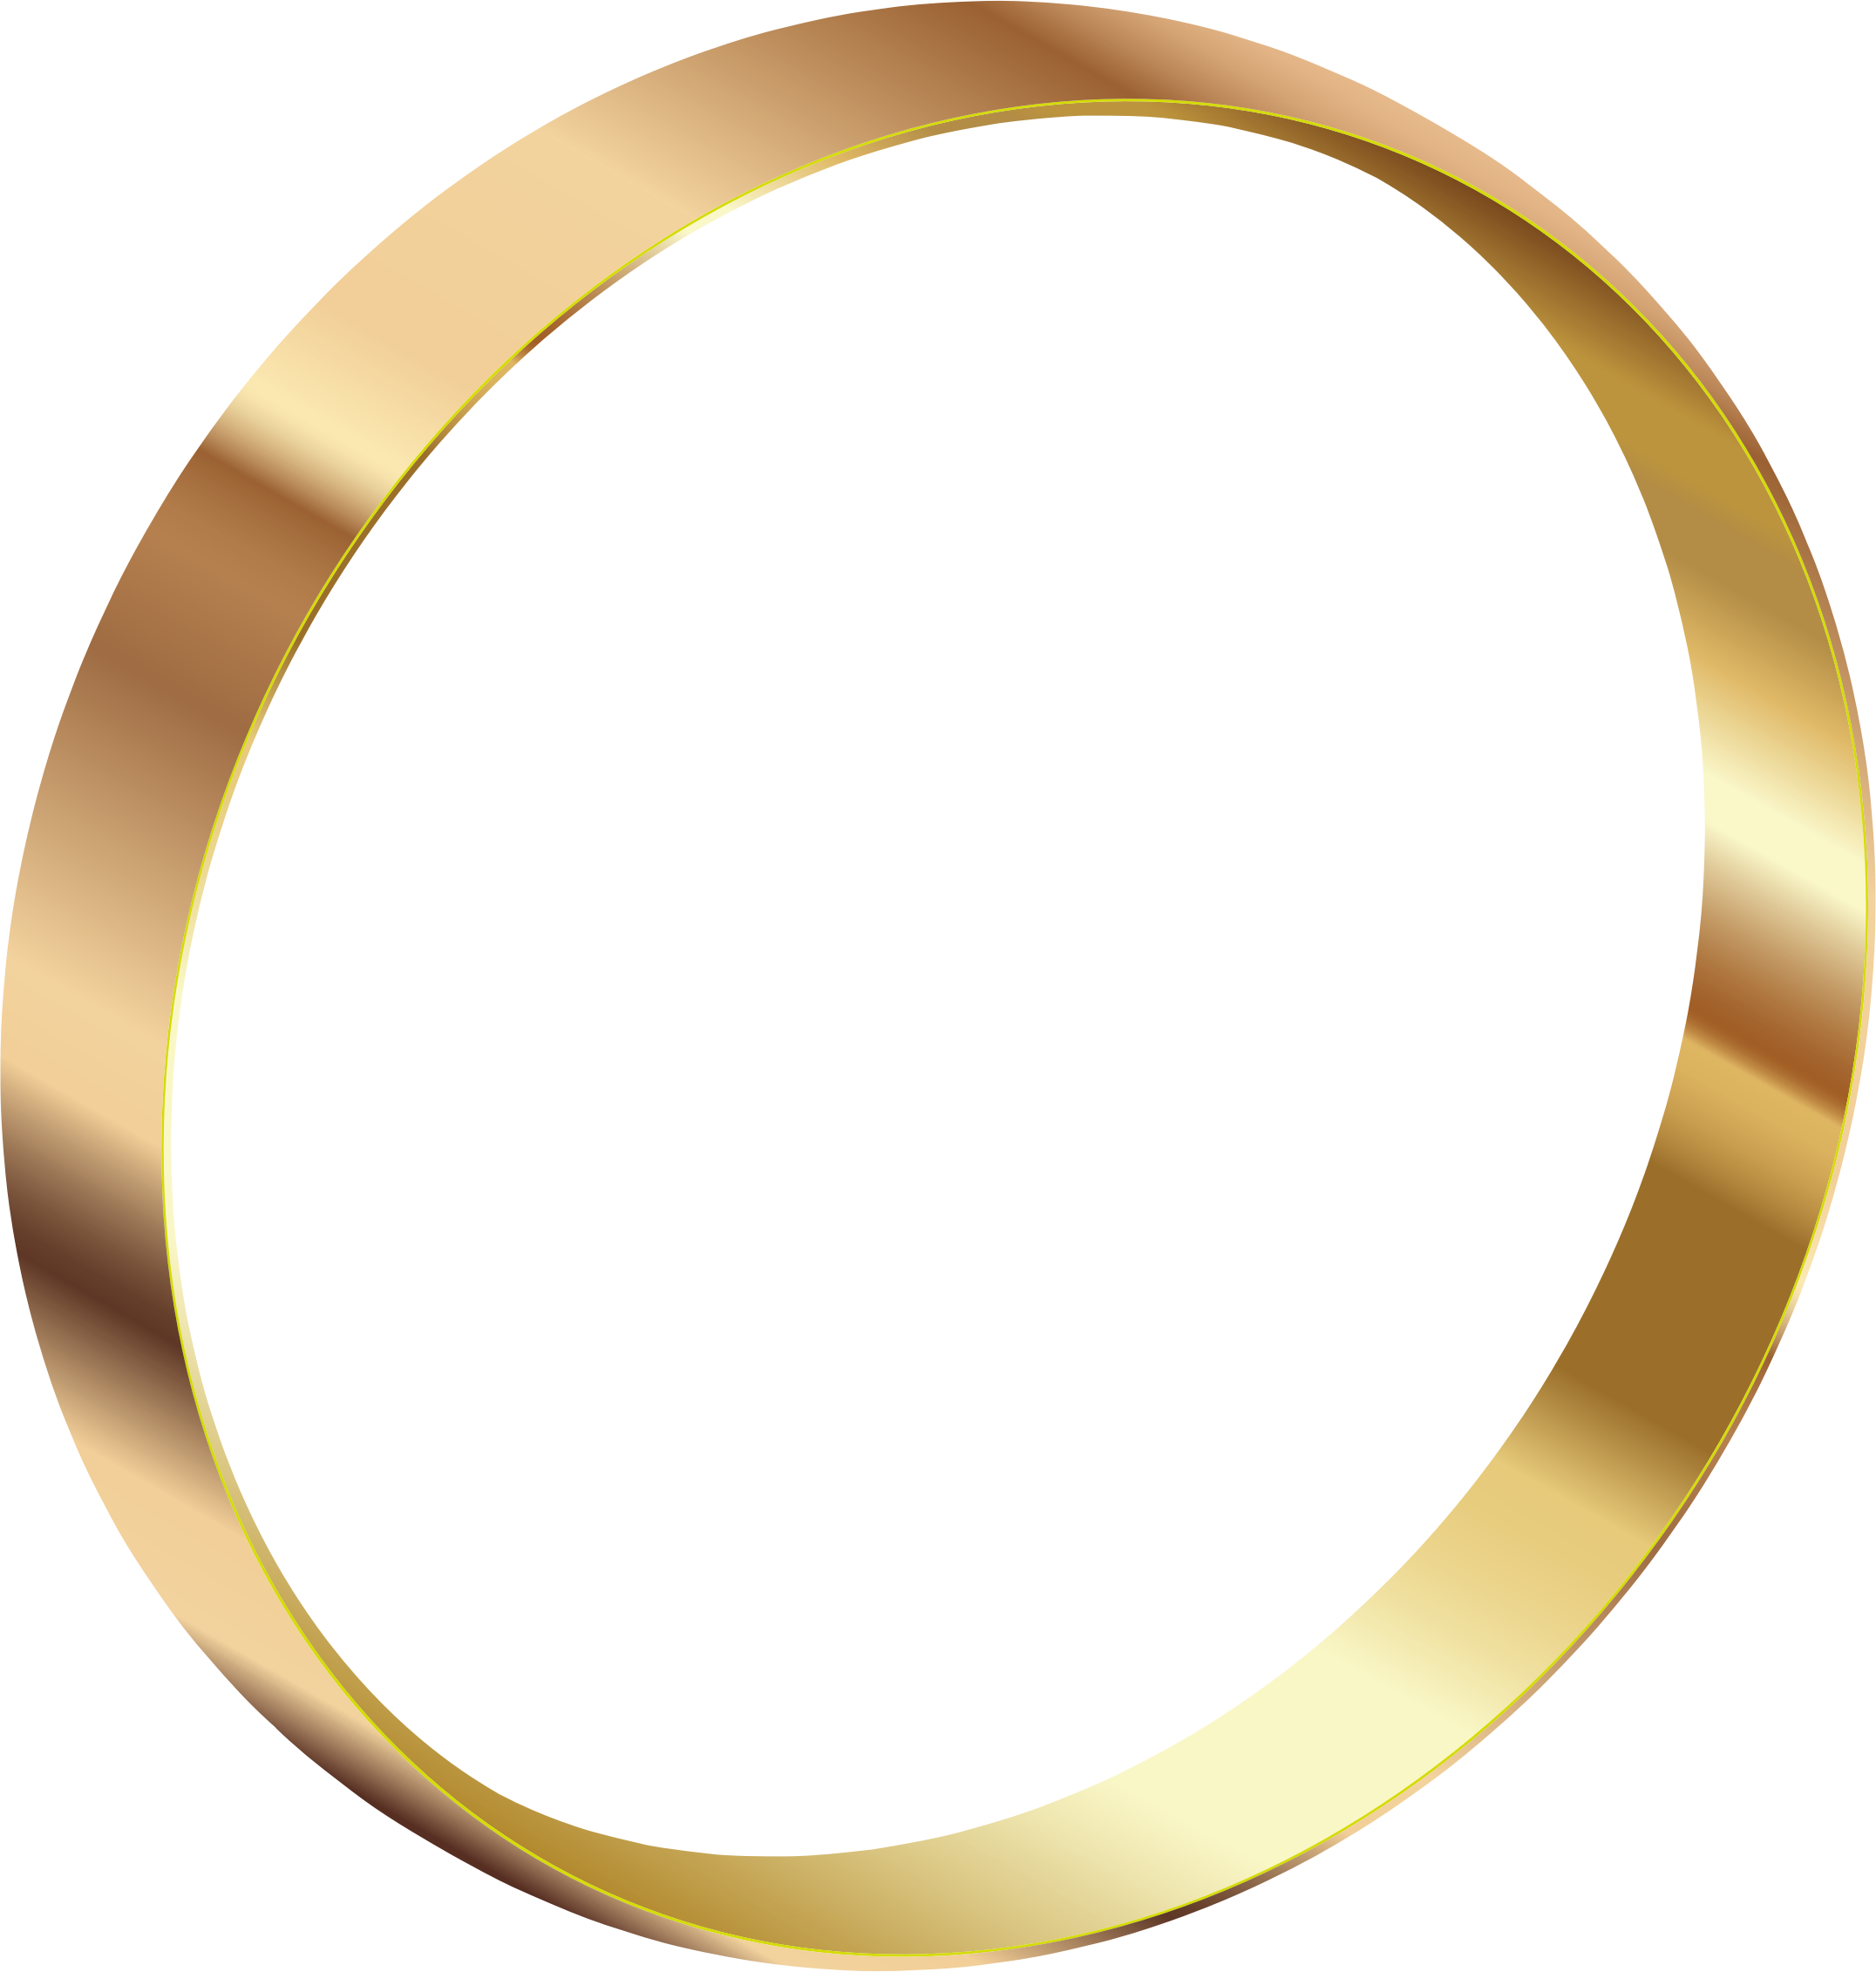 Gold circle clipart freeuse Clip art - Gold PNG image png download - 2152*2262 - Free ... freeuse